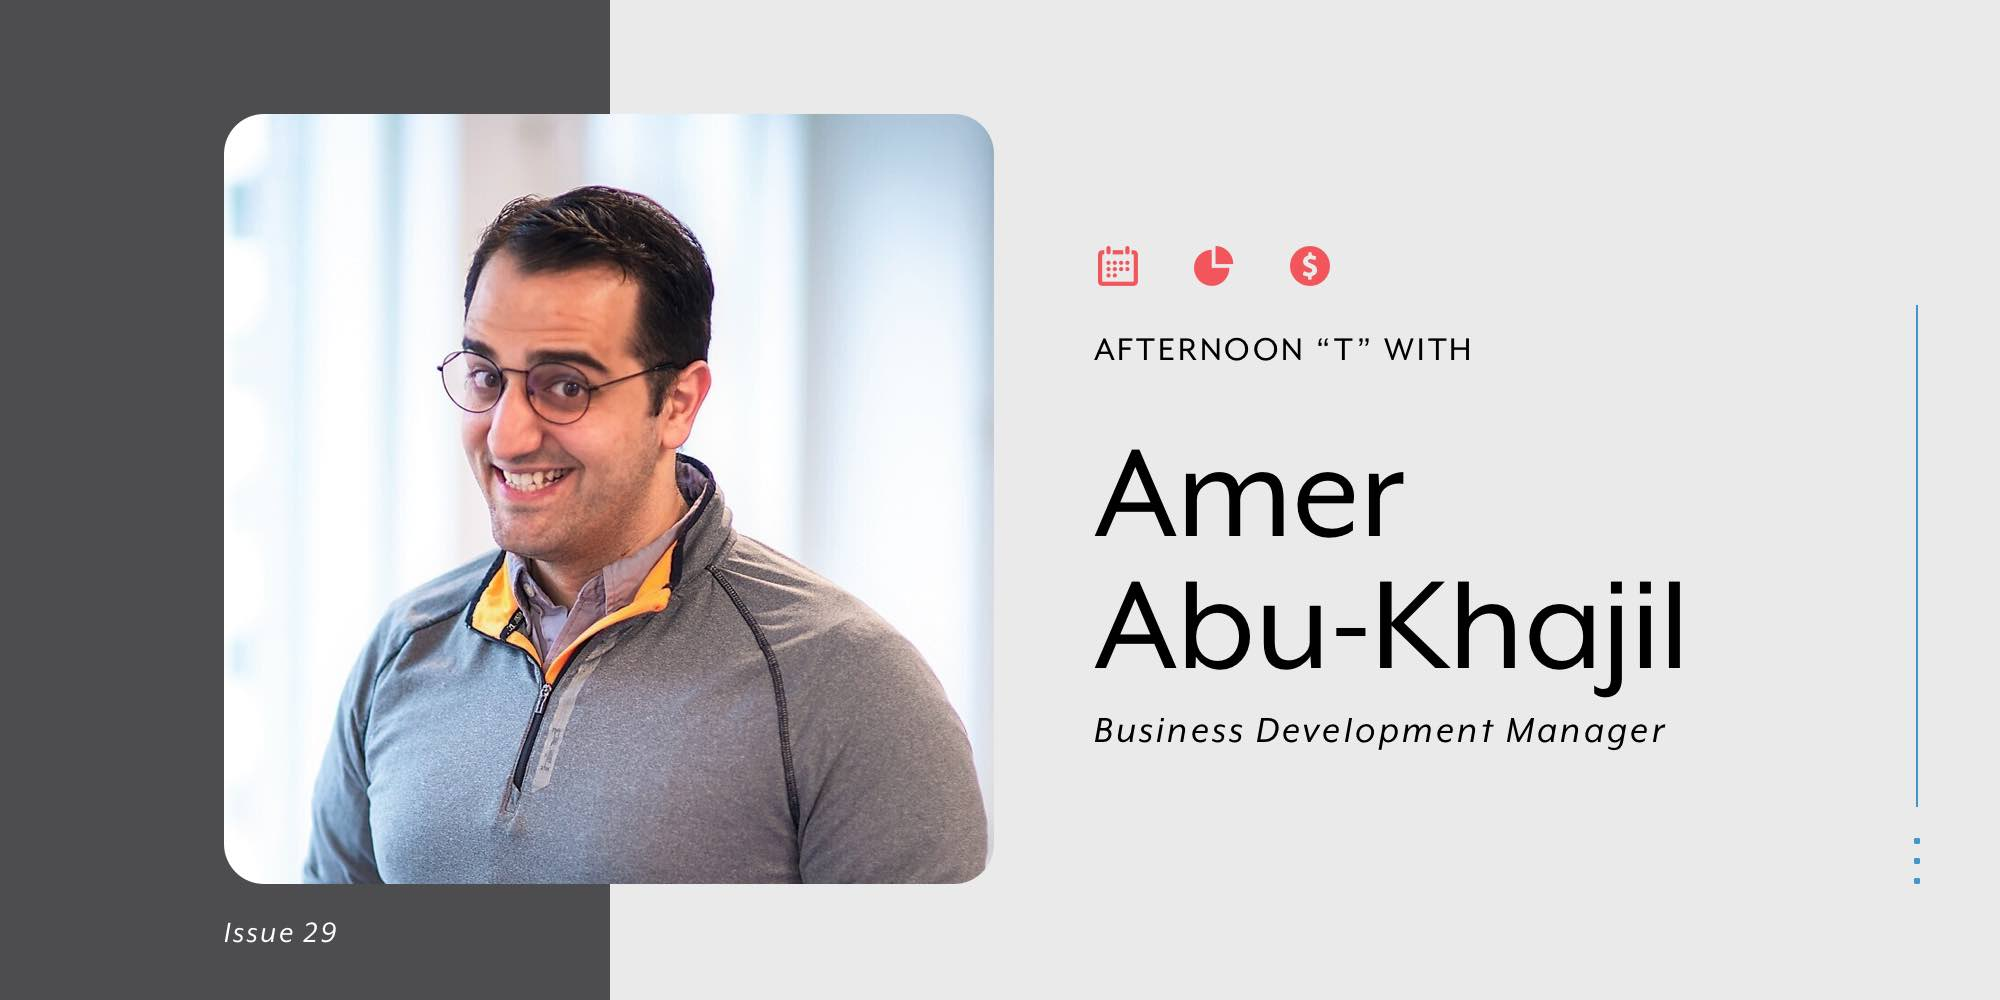 Business Development Manager Amer